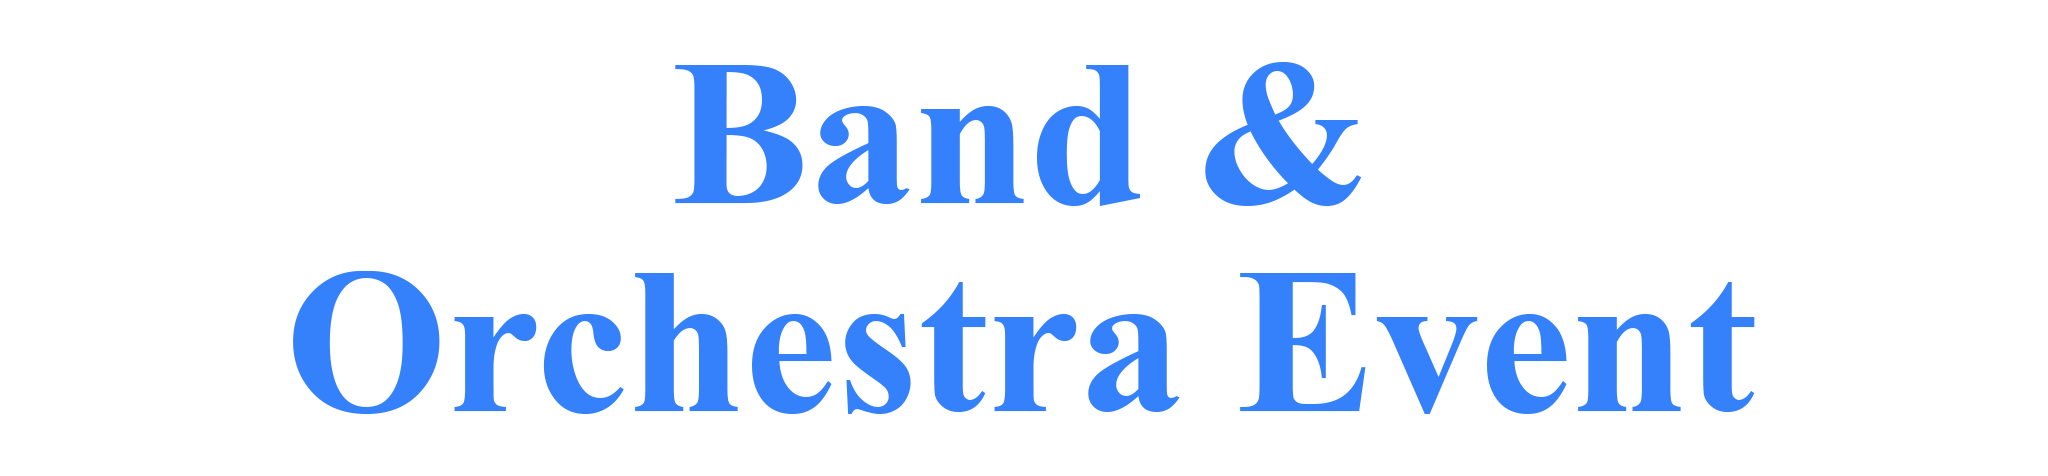 Andy's Music Band & Orchestra Rental Plan Program Virtual Event